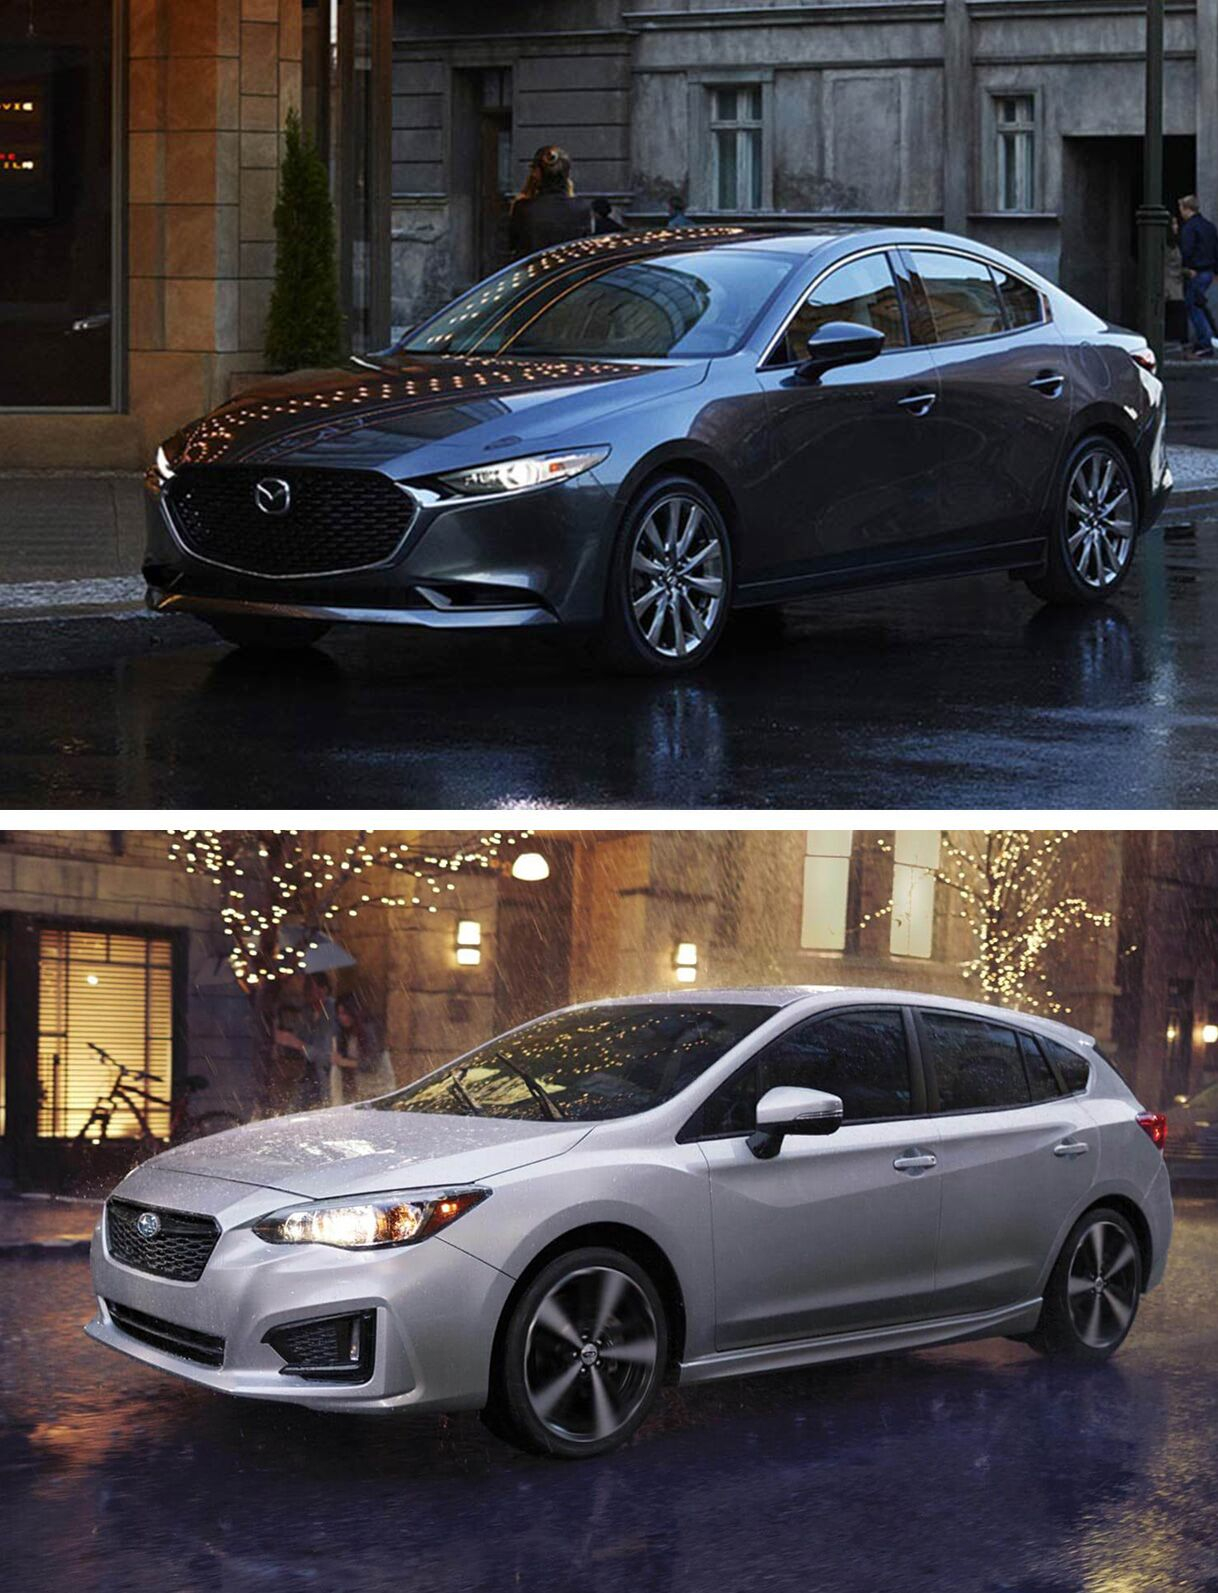 2019 Mazda 3 AWD Sedan vs. 2019 Subaru Impreza Sedan